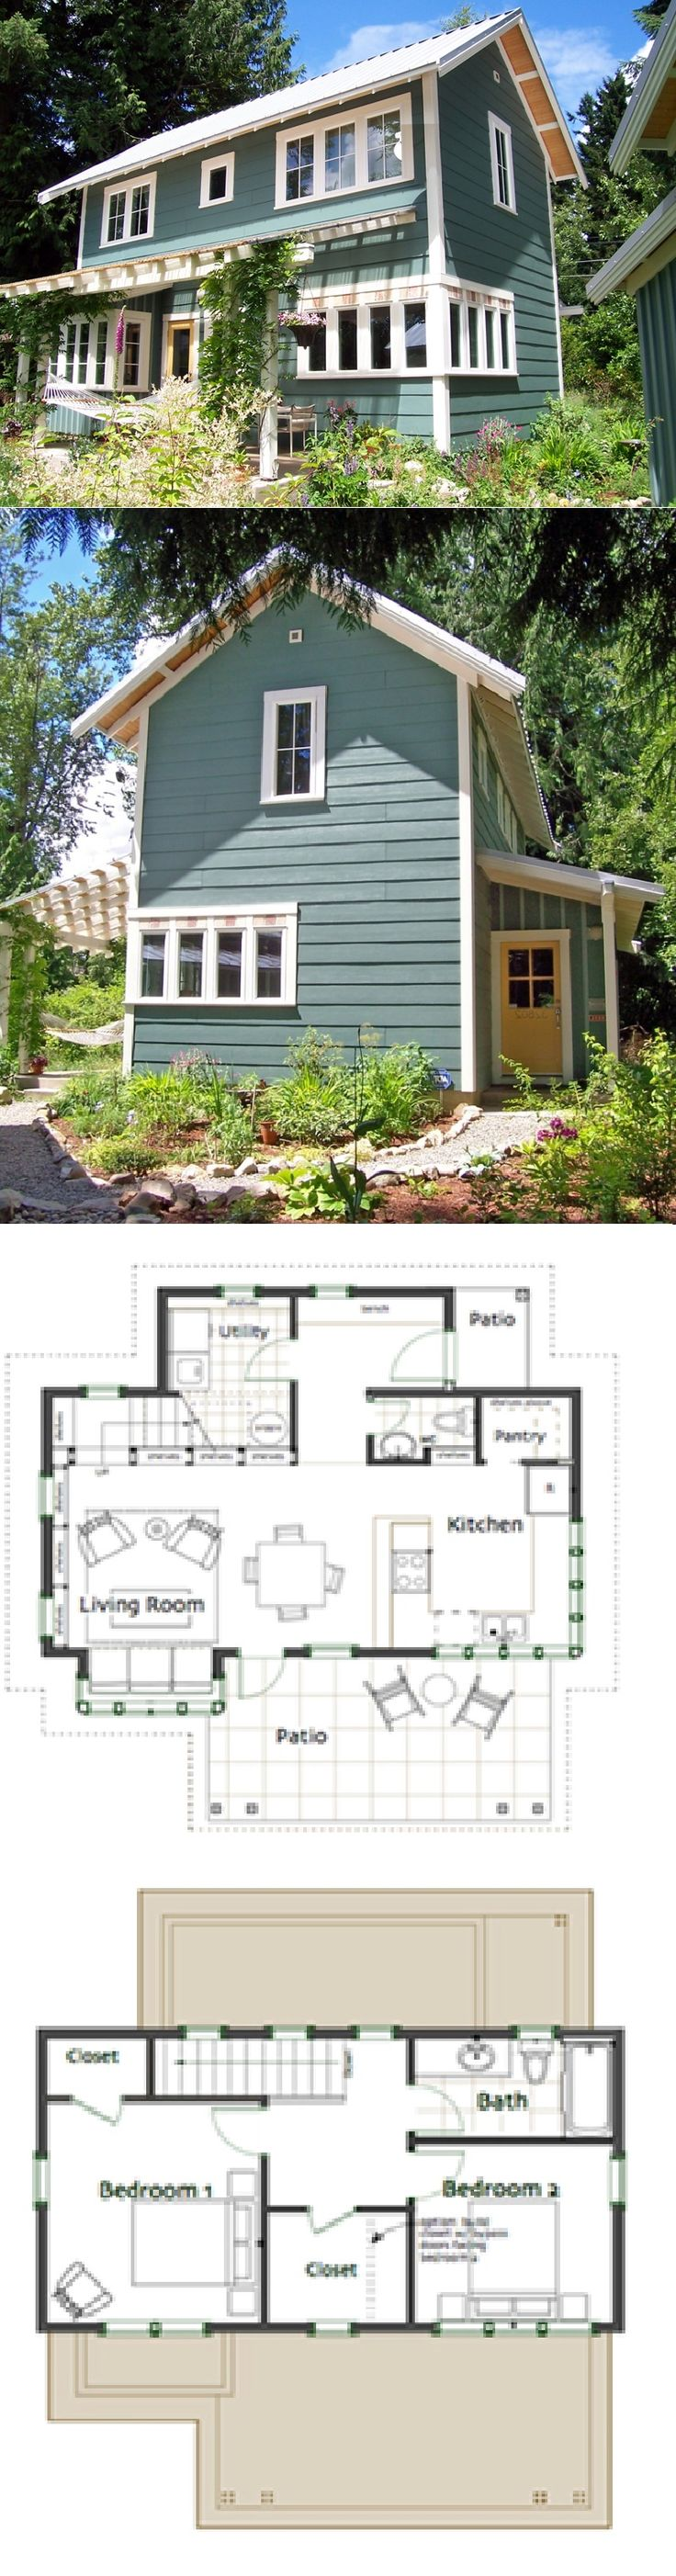 Best 25+ Small House Plans Ideas On Pinterest | Small House Floor Plans,  Small Home Plans And House Of Bedrooms